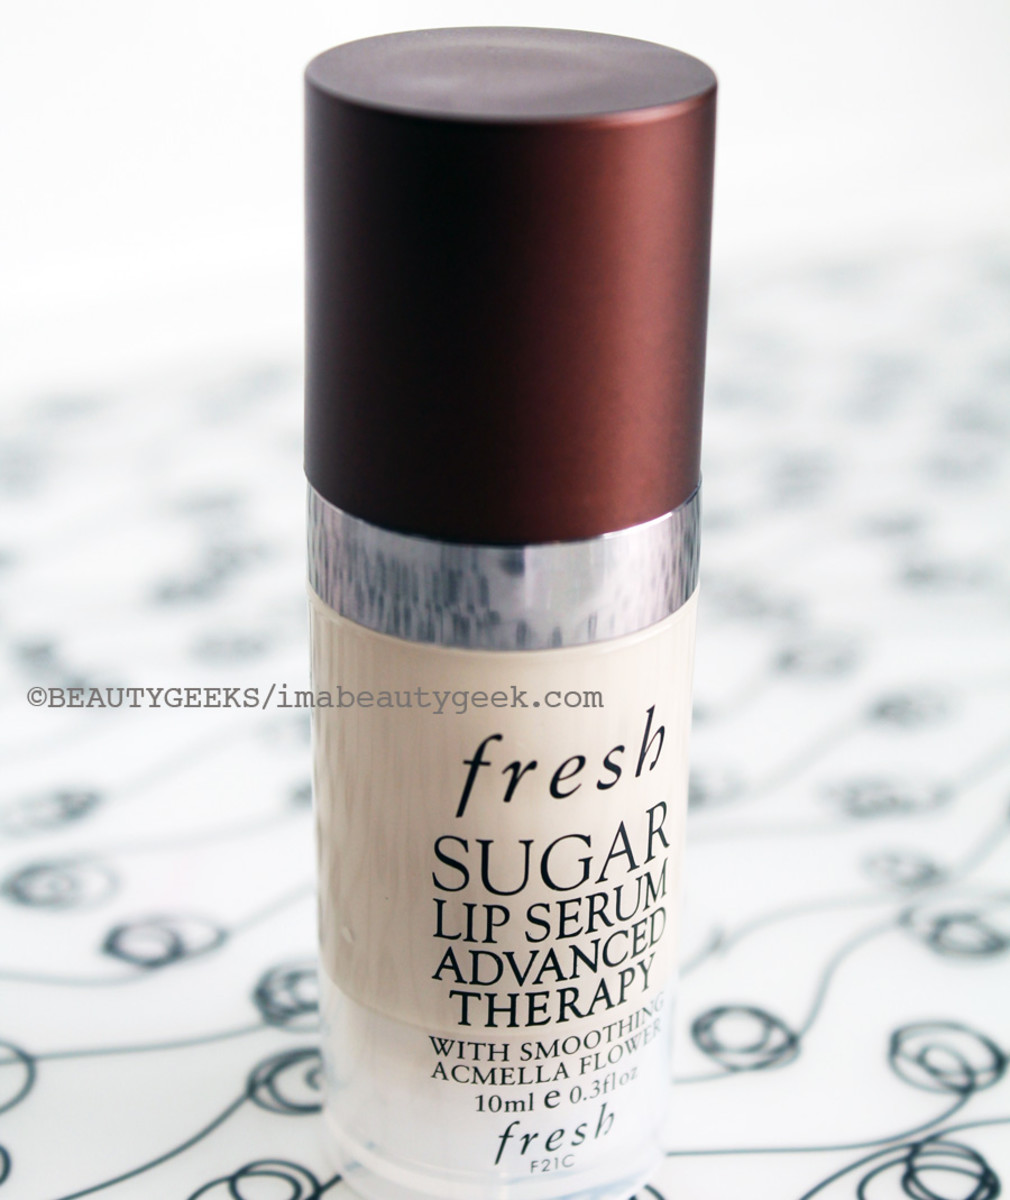 Fresh Sugar Lip Serum Advanced Therapy a must for dry lips